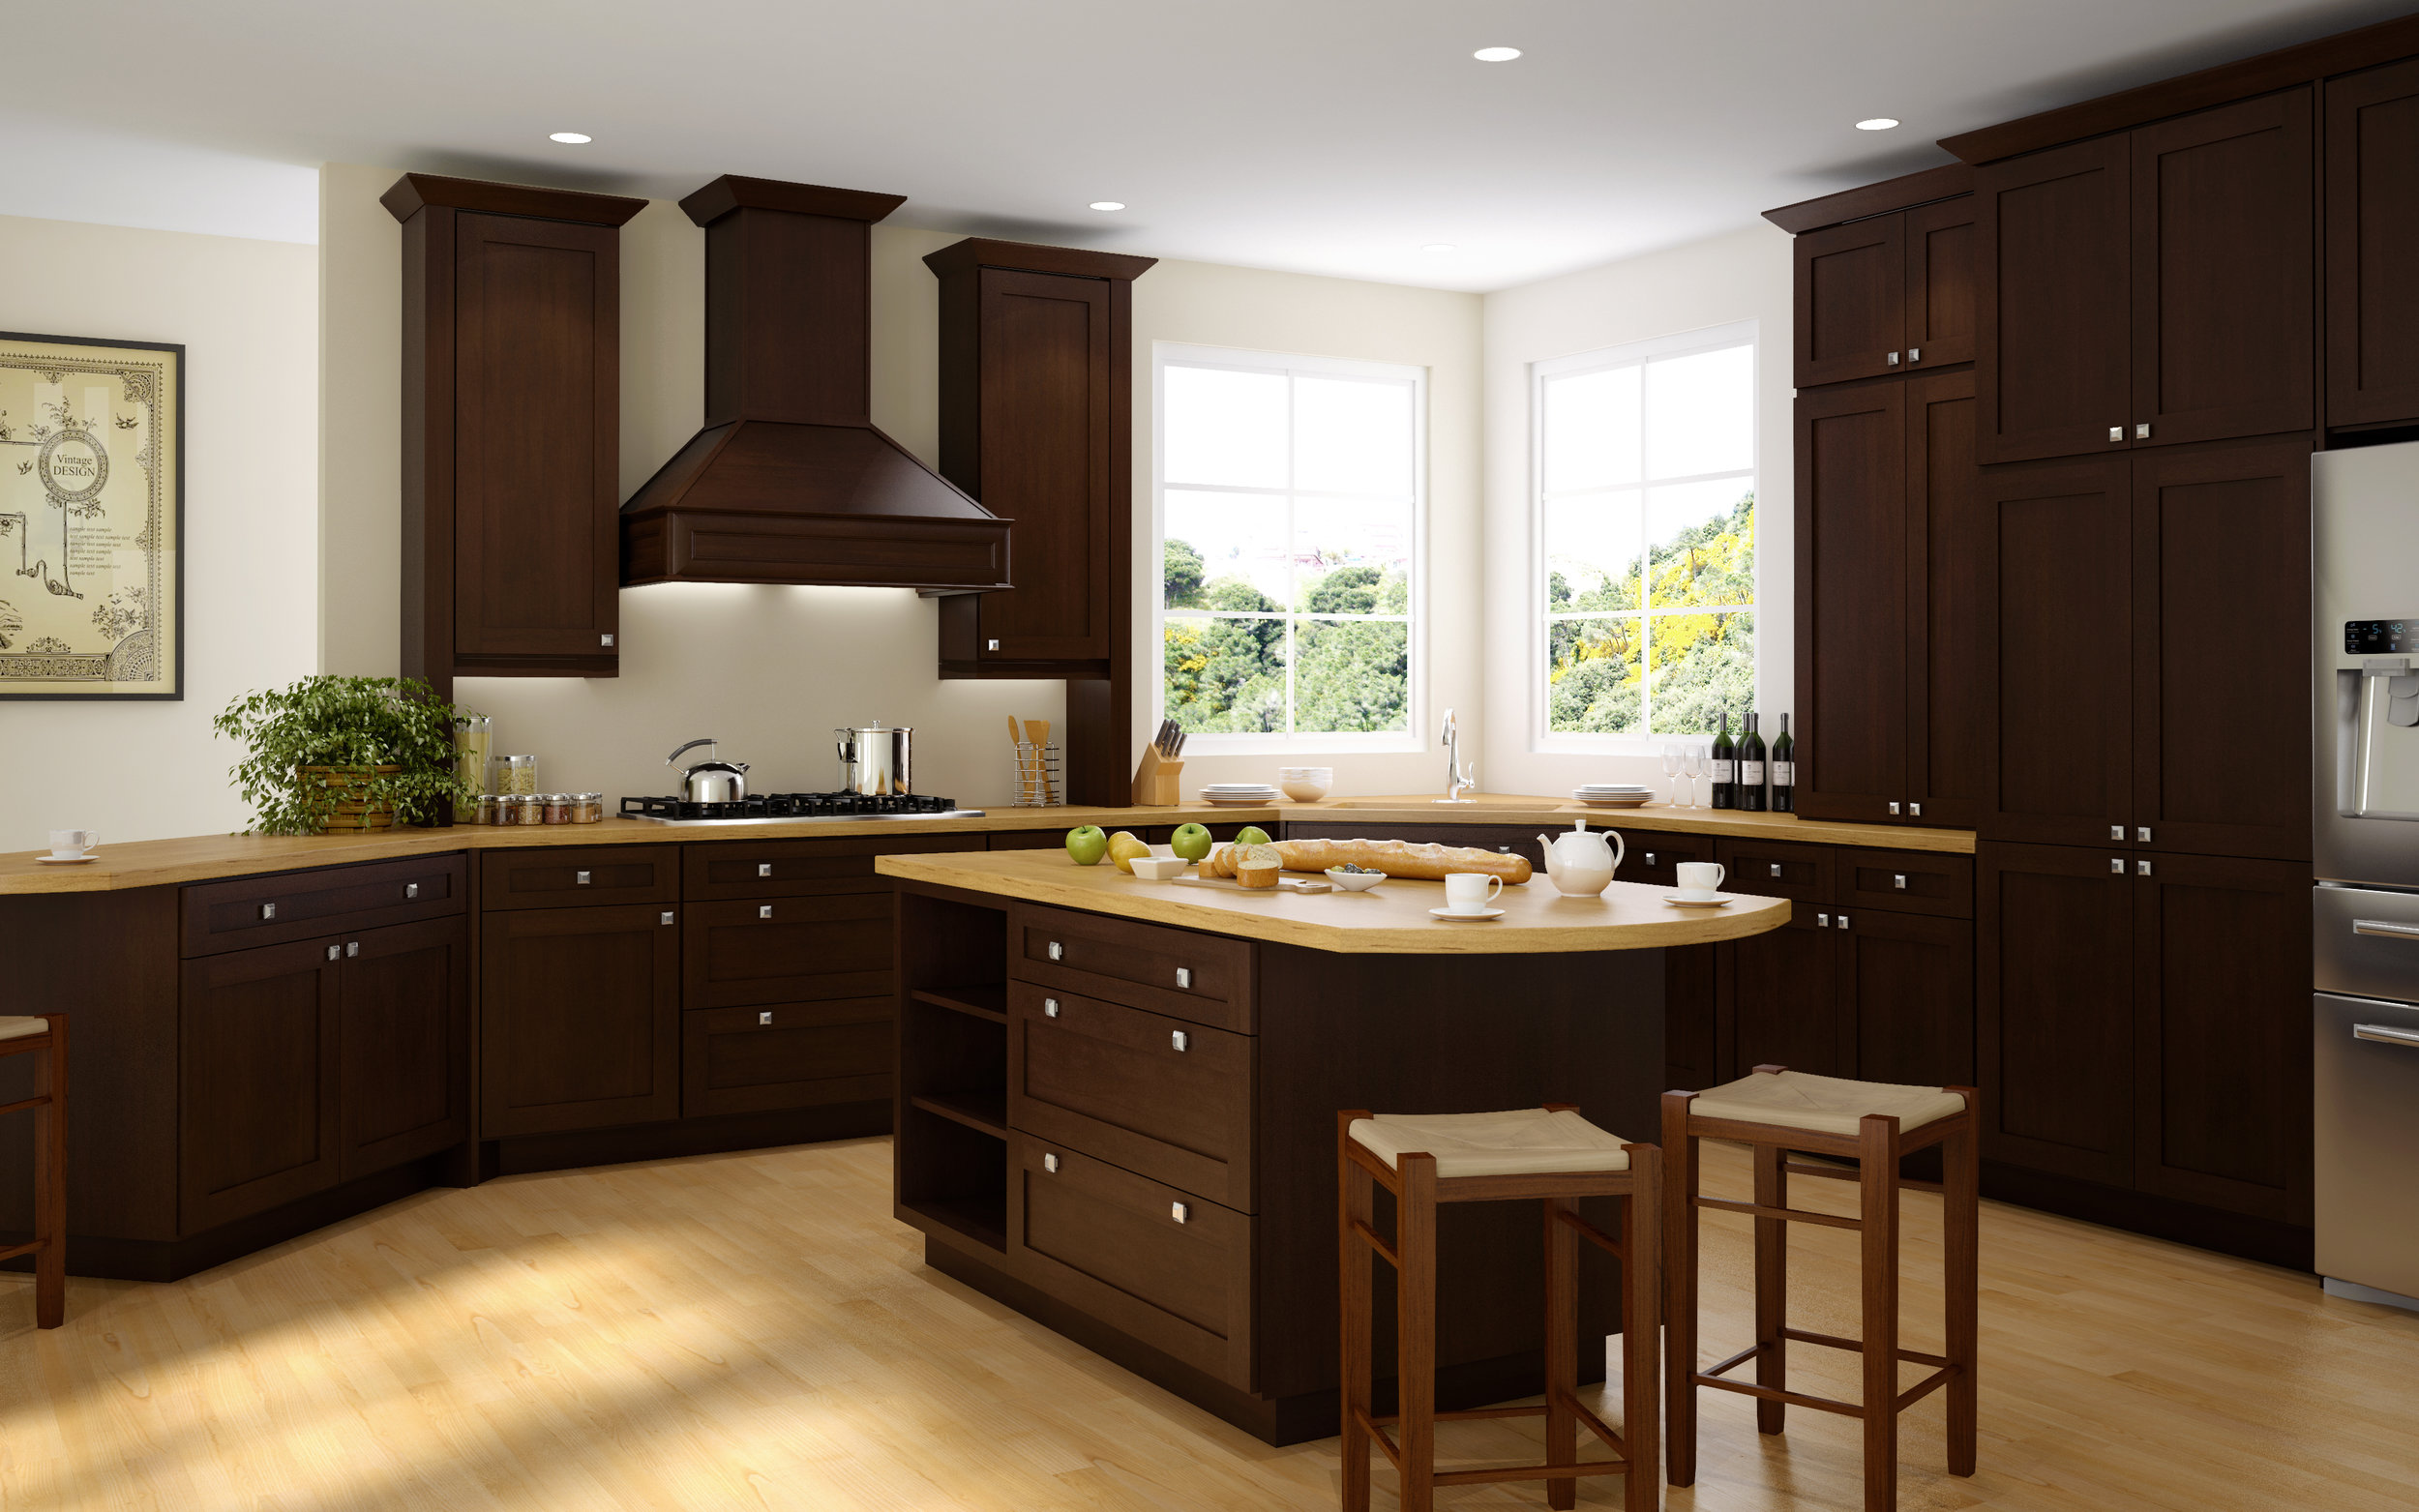 forevermark-kitchen-design-studio-of-pelham.jpg